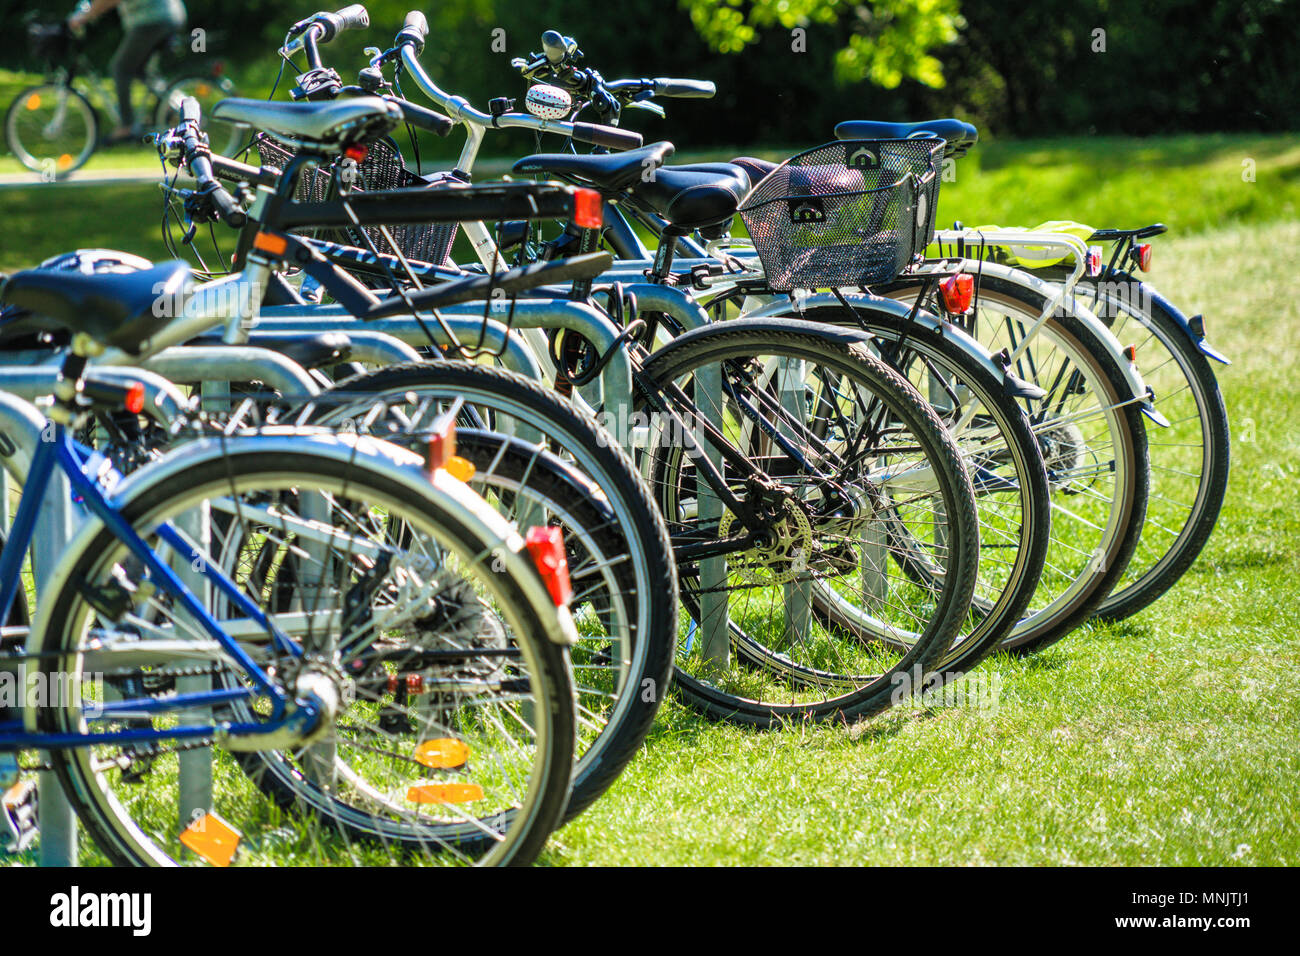 Wolfsburg, lower saxony, germany, May 5, 2018: Abstracted image with intentionally low depth of field from a group of bicycles parked on the lawn of a - Stock Image